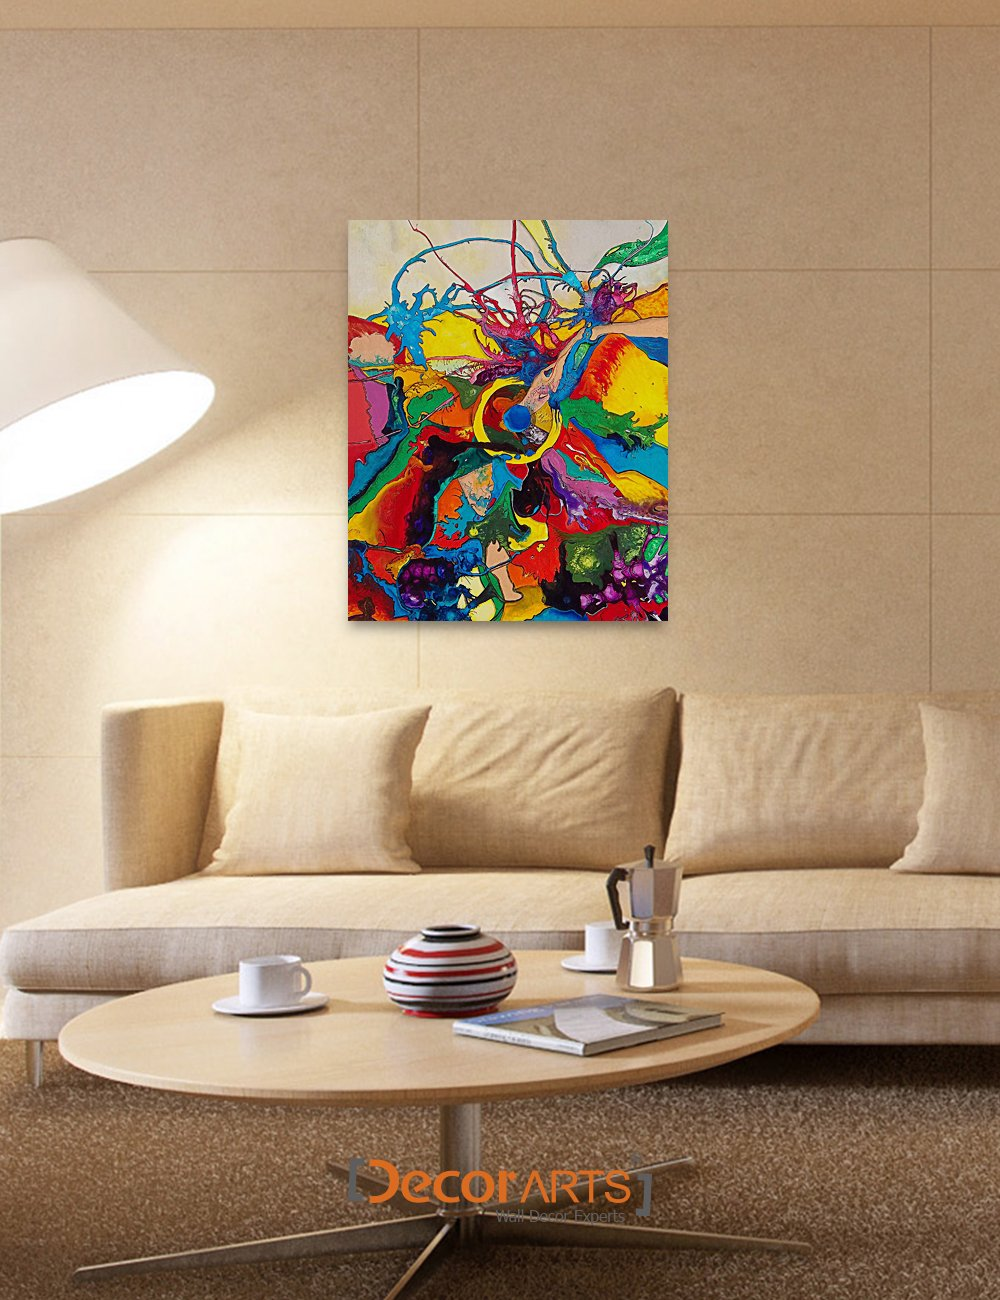 DecorArts Abstract Reproduction Acid free stretched Image 2